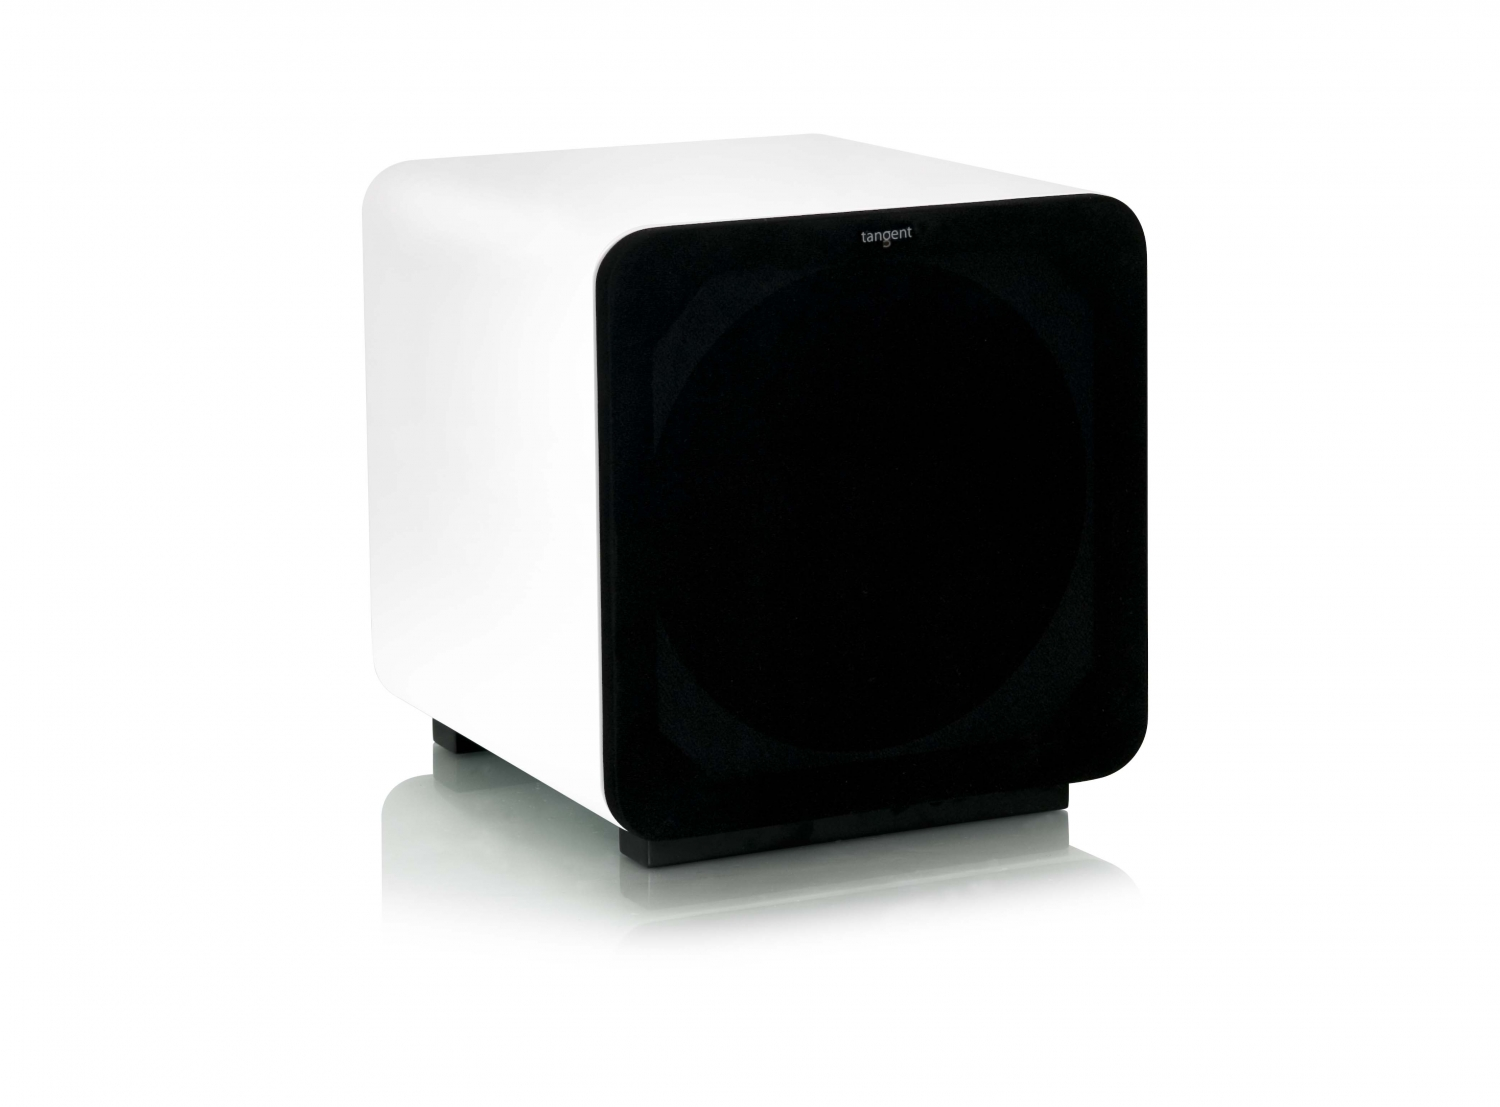 Tangent Evo E8 Sub White Subwoofer Tangent A S